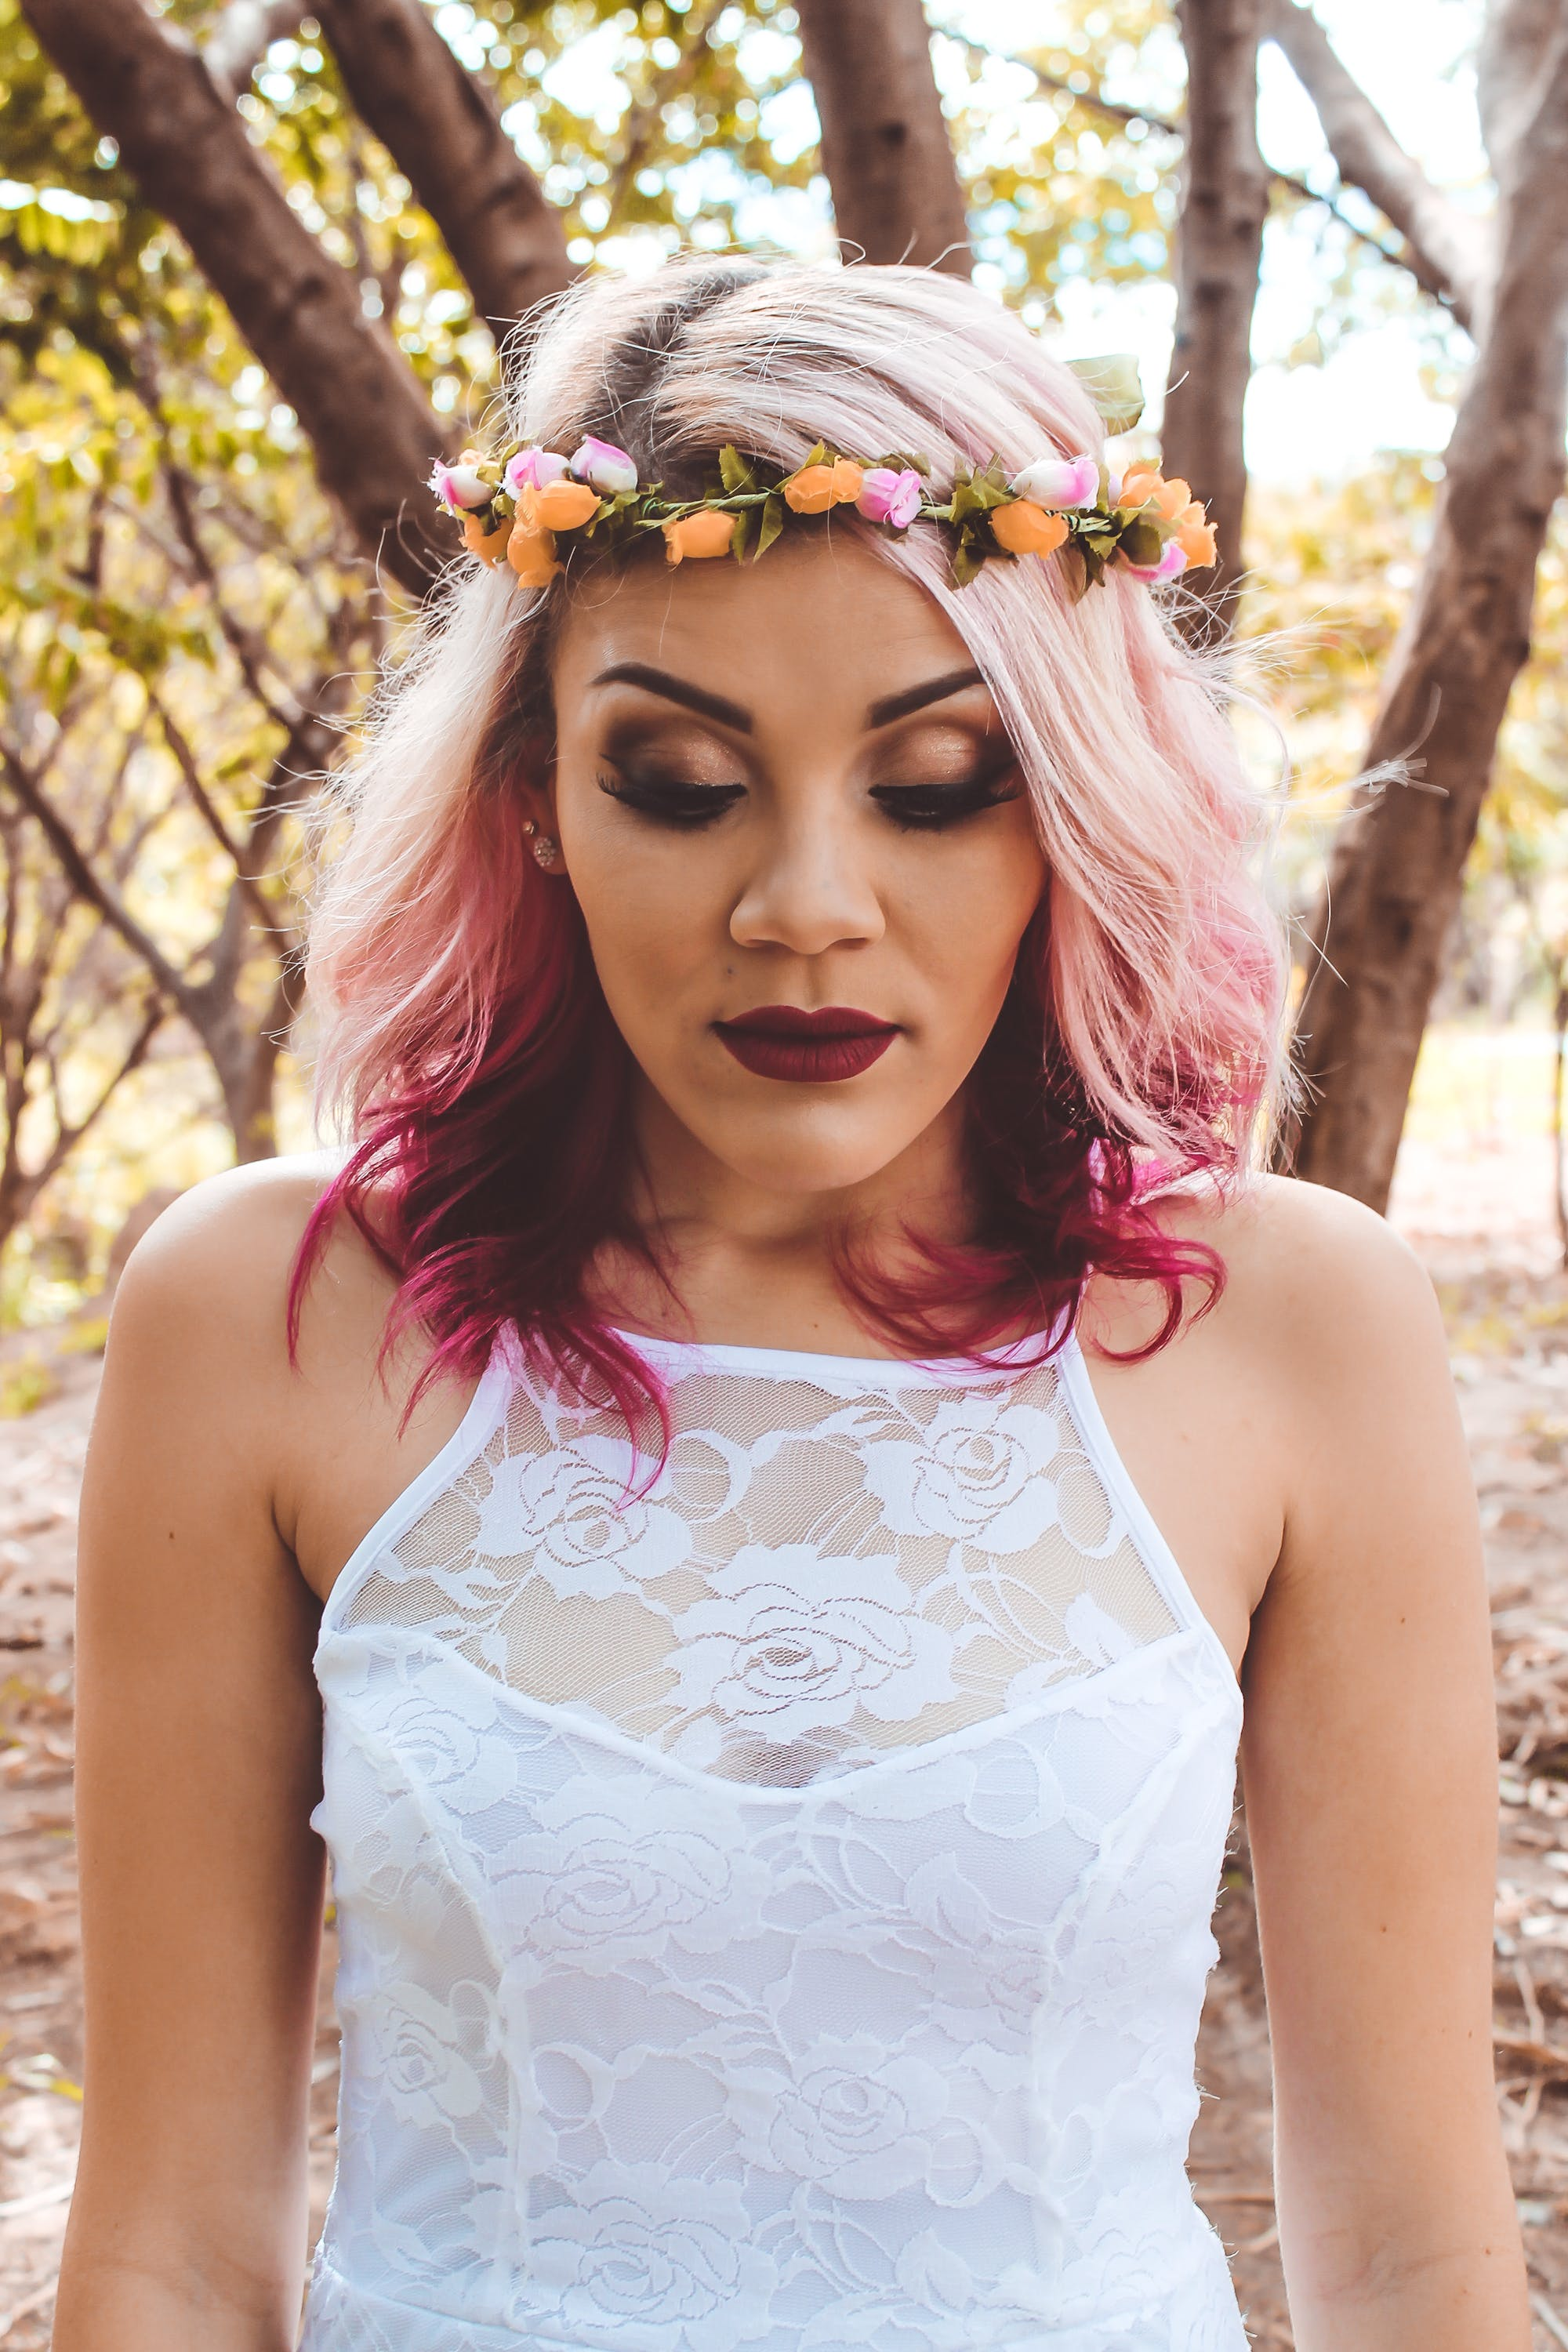 Close-up Photo of Woman in Flower Crown and White Lace Top